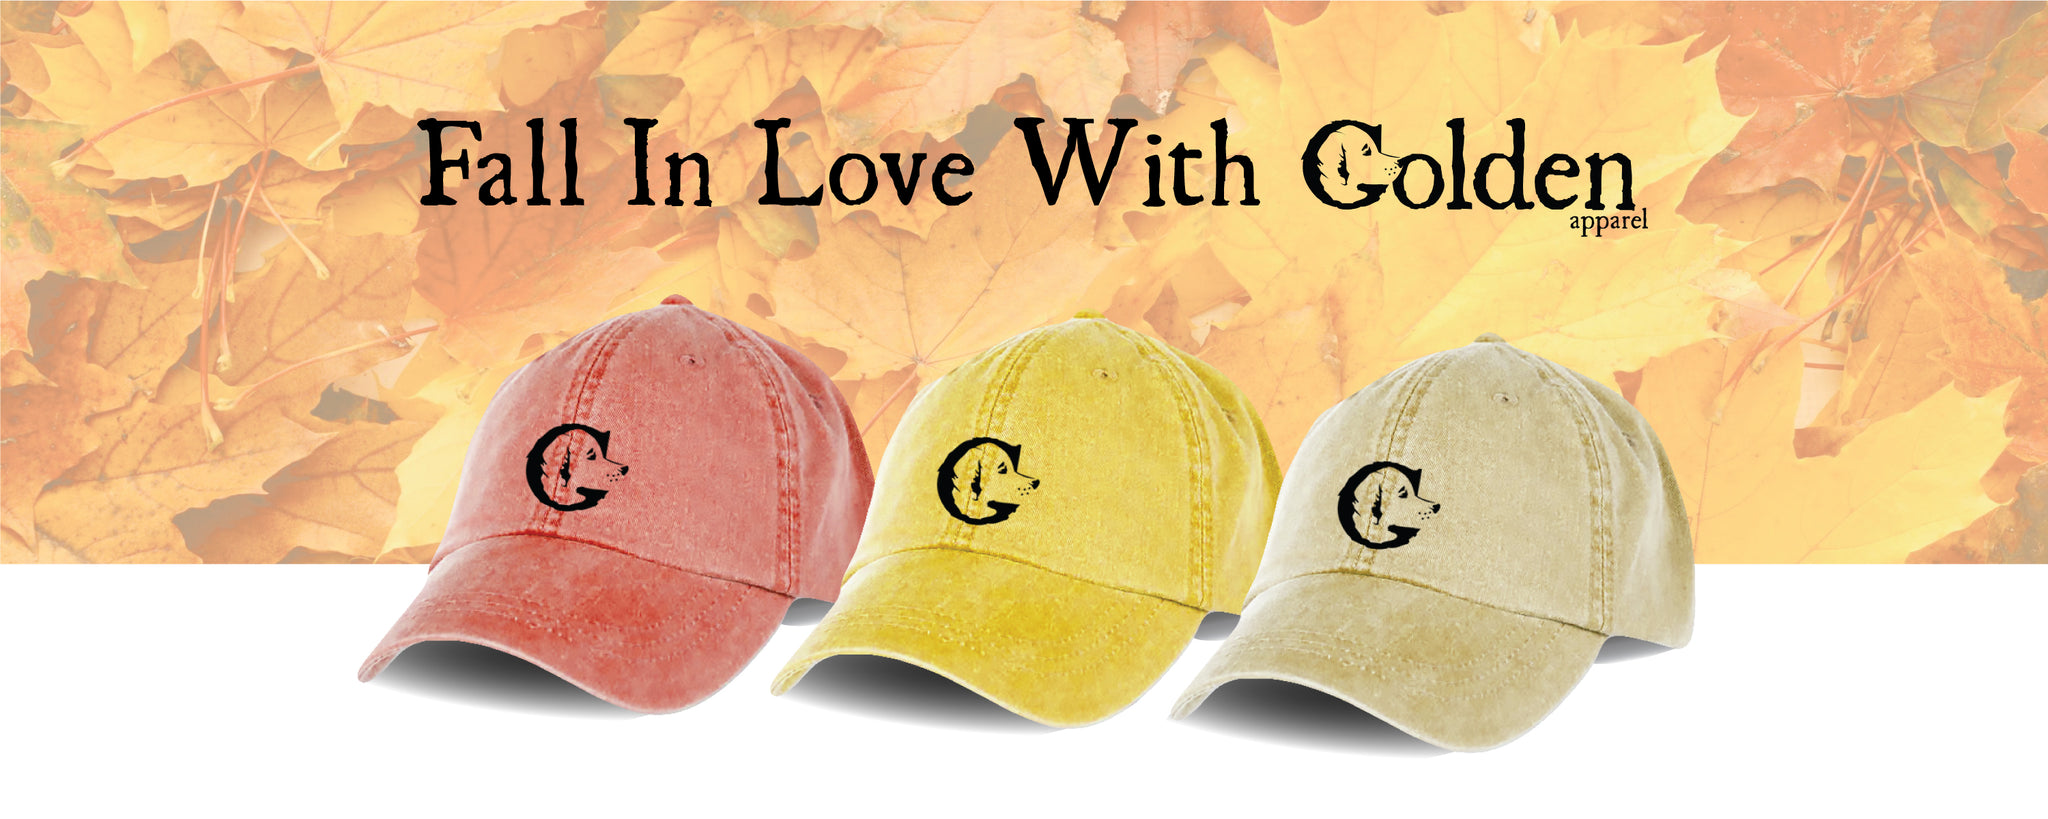 Fall in Love with Golden Apparel